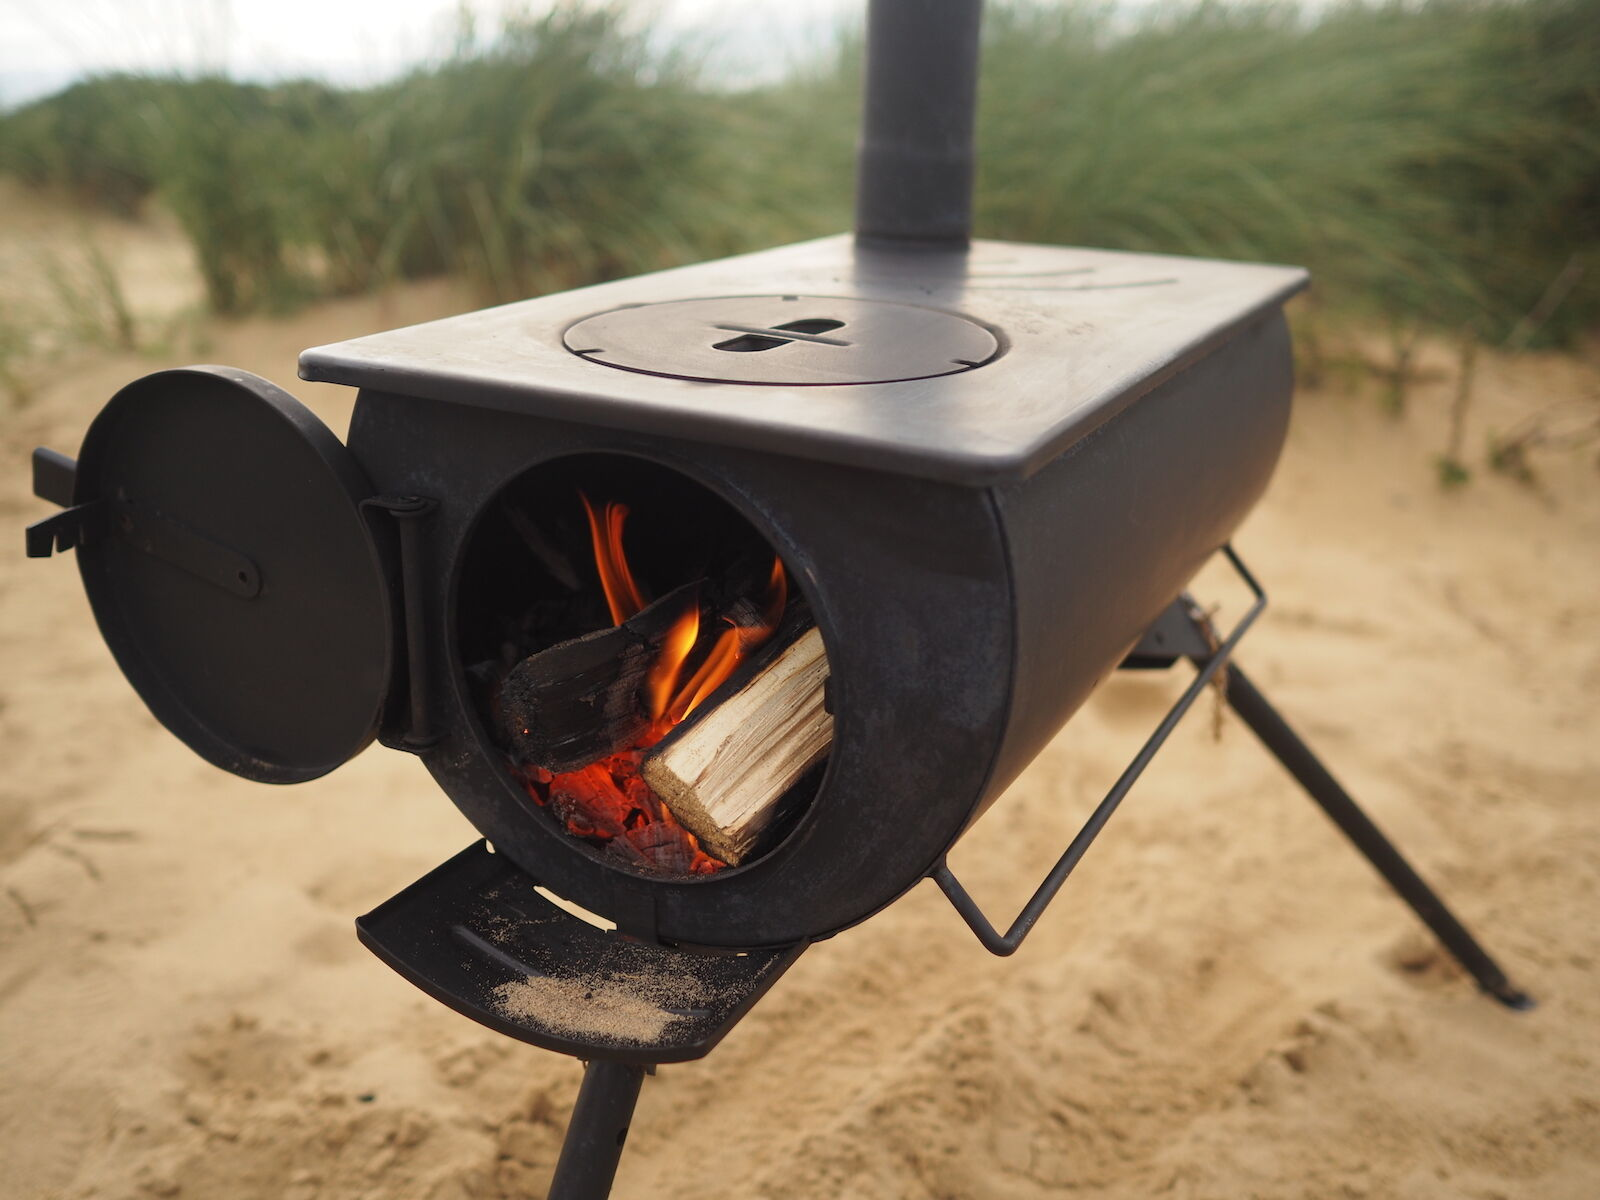 Outbacker 174 Portable Wood Burner Camping Stove With Free